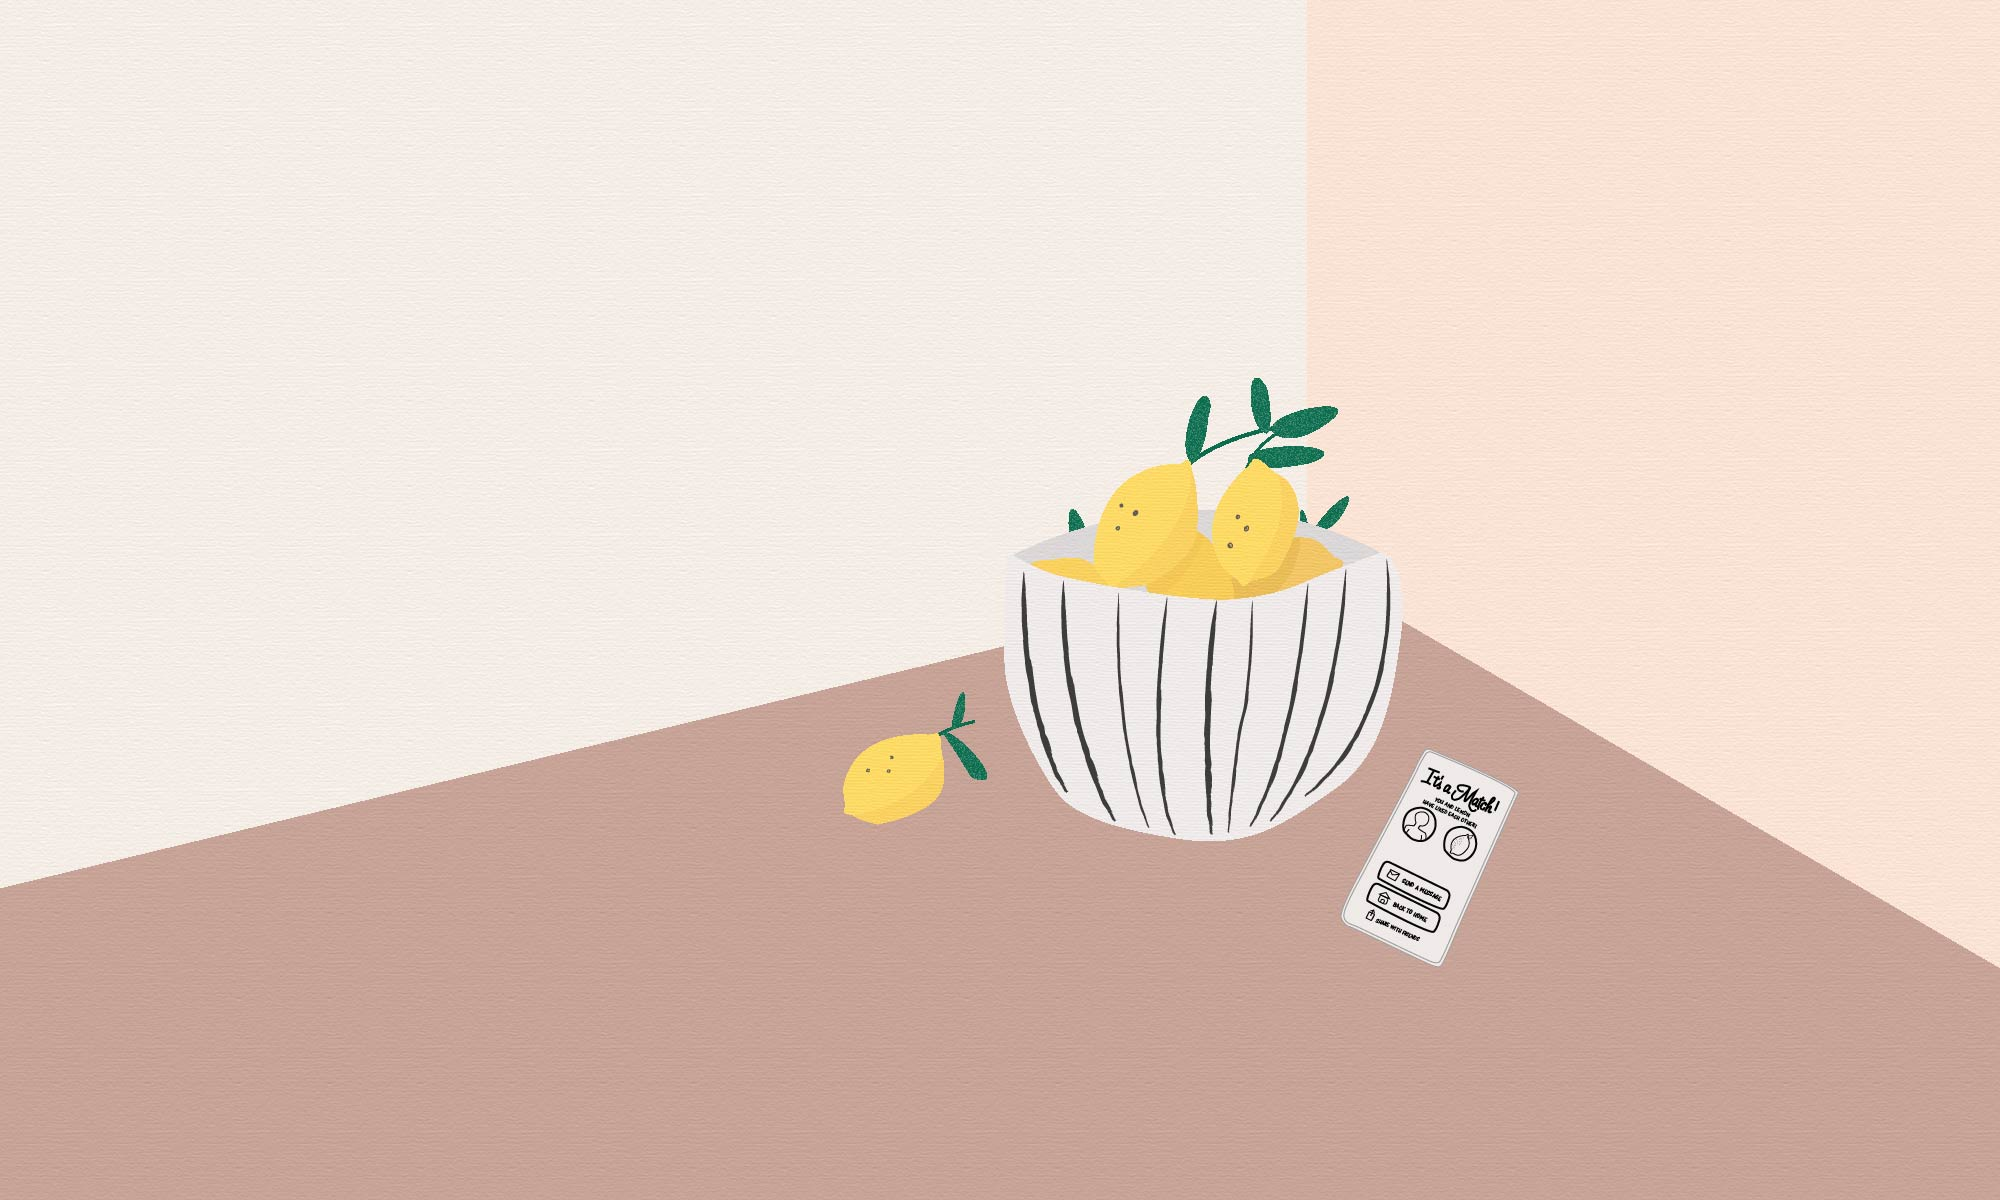 An illustration of a bowl of lemons and a phone screen showing a Tinder match between a person and a lemon